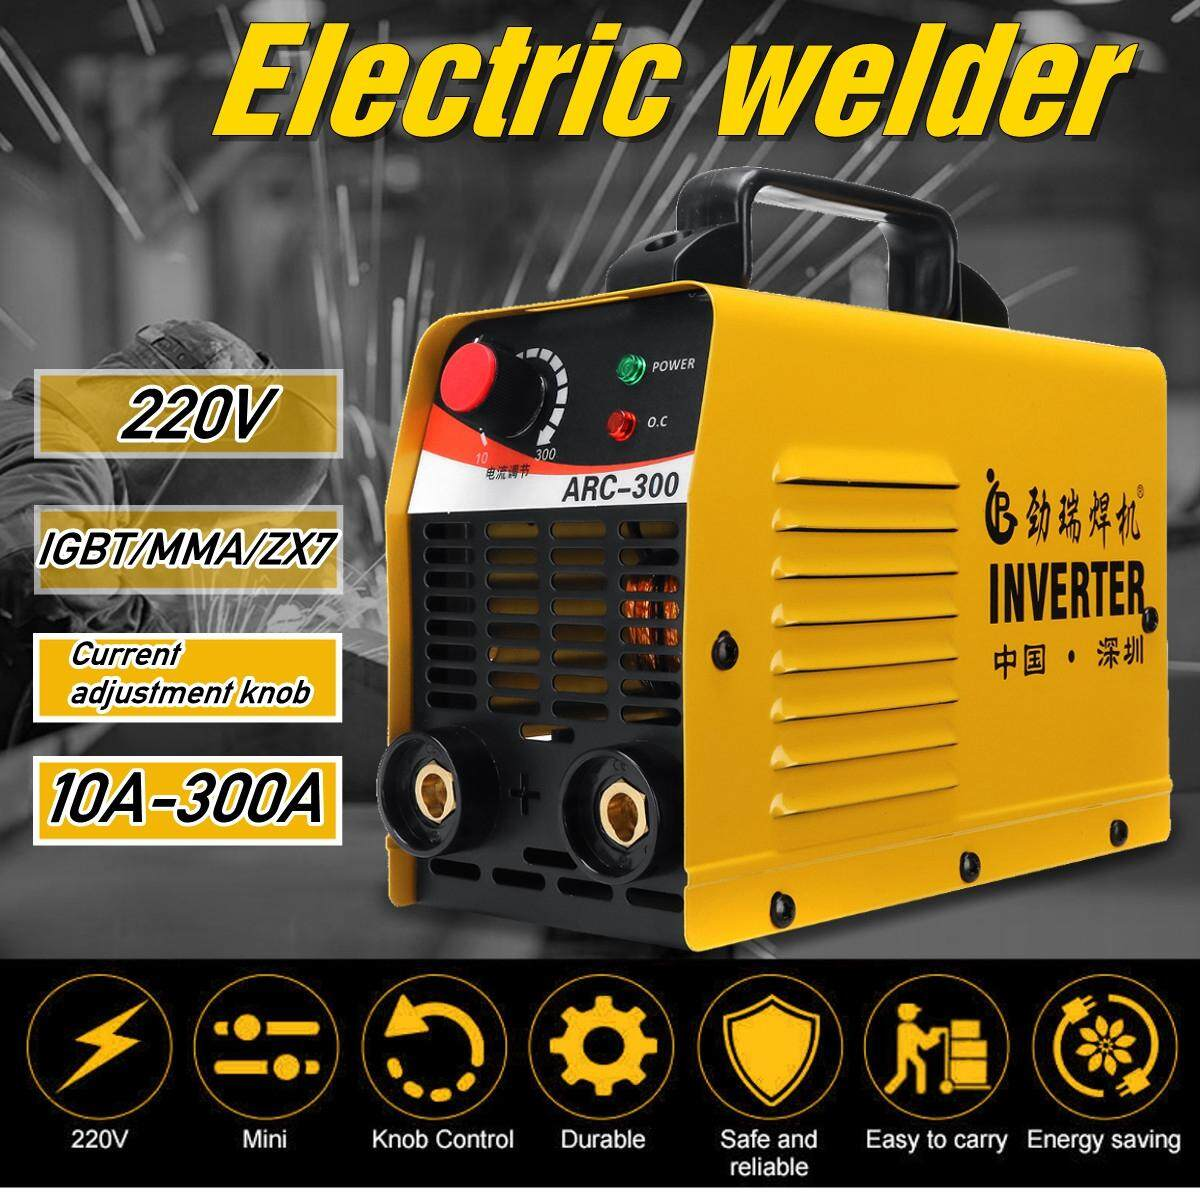 【Free Shipping + Flash Deal】220V ARC-300 10-300A ACR ZX7 IGBT MMA Portable LCD Electric Welder Digital Display Welding Machine